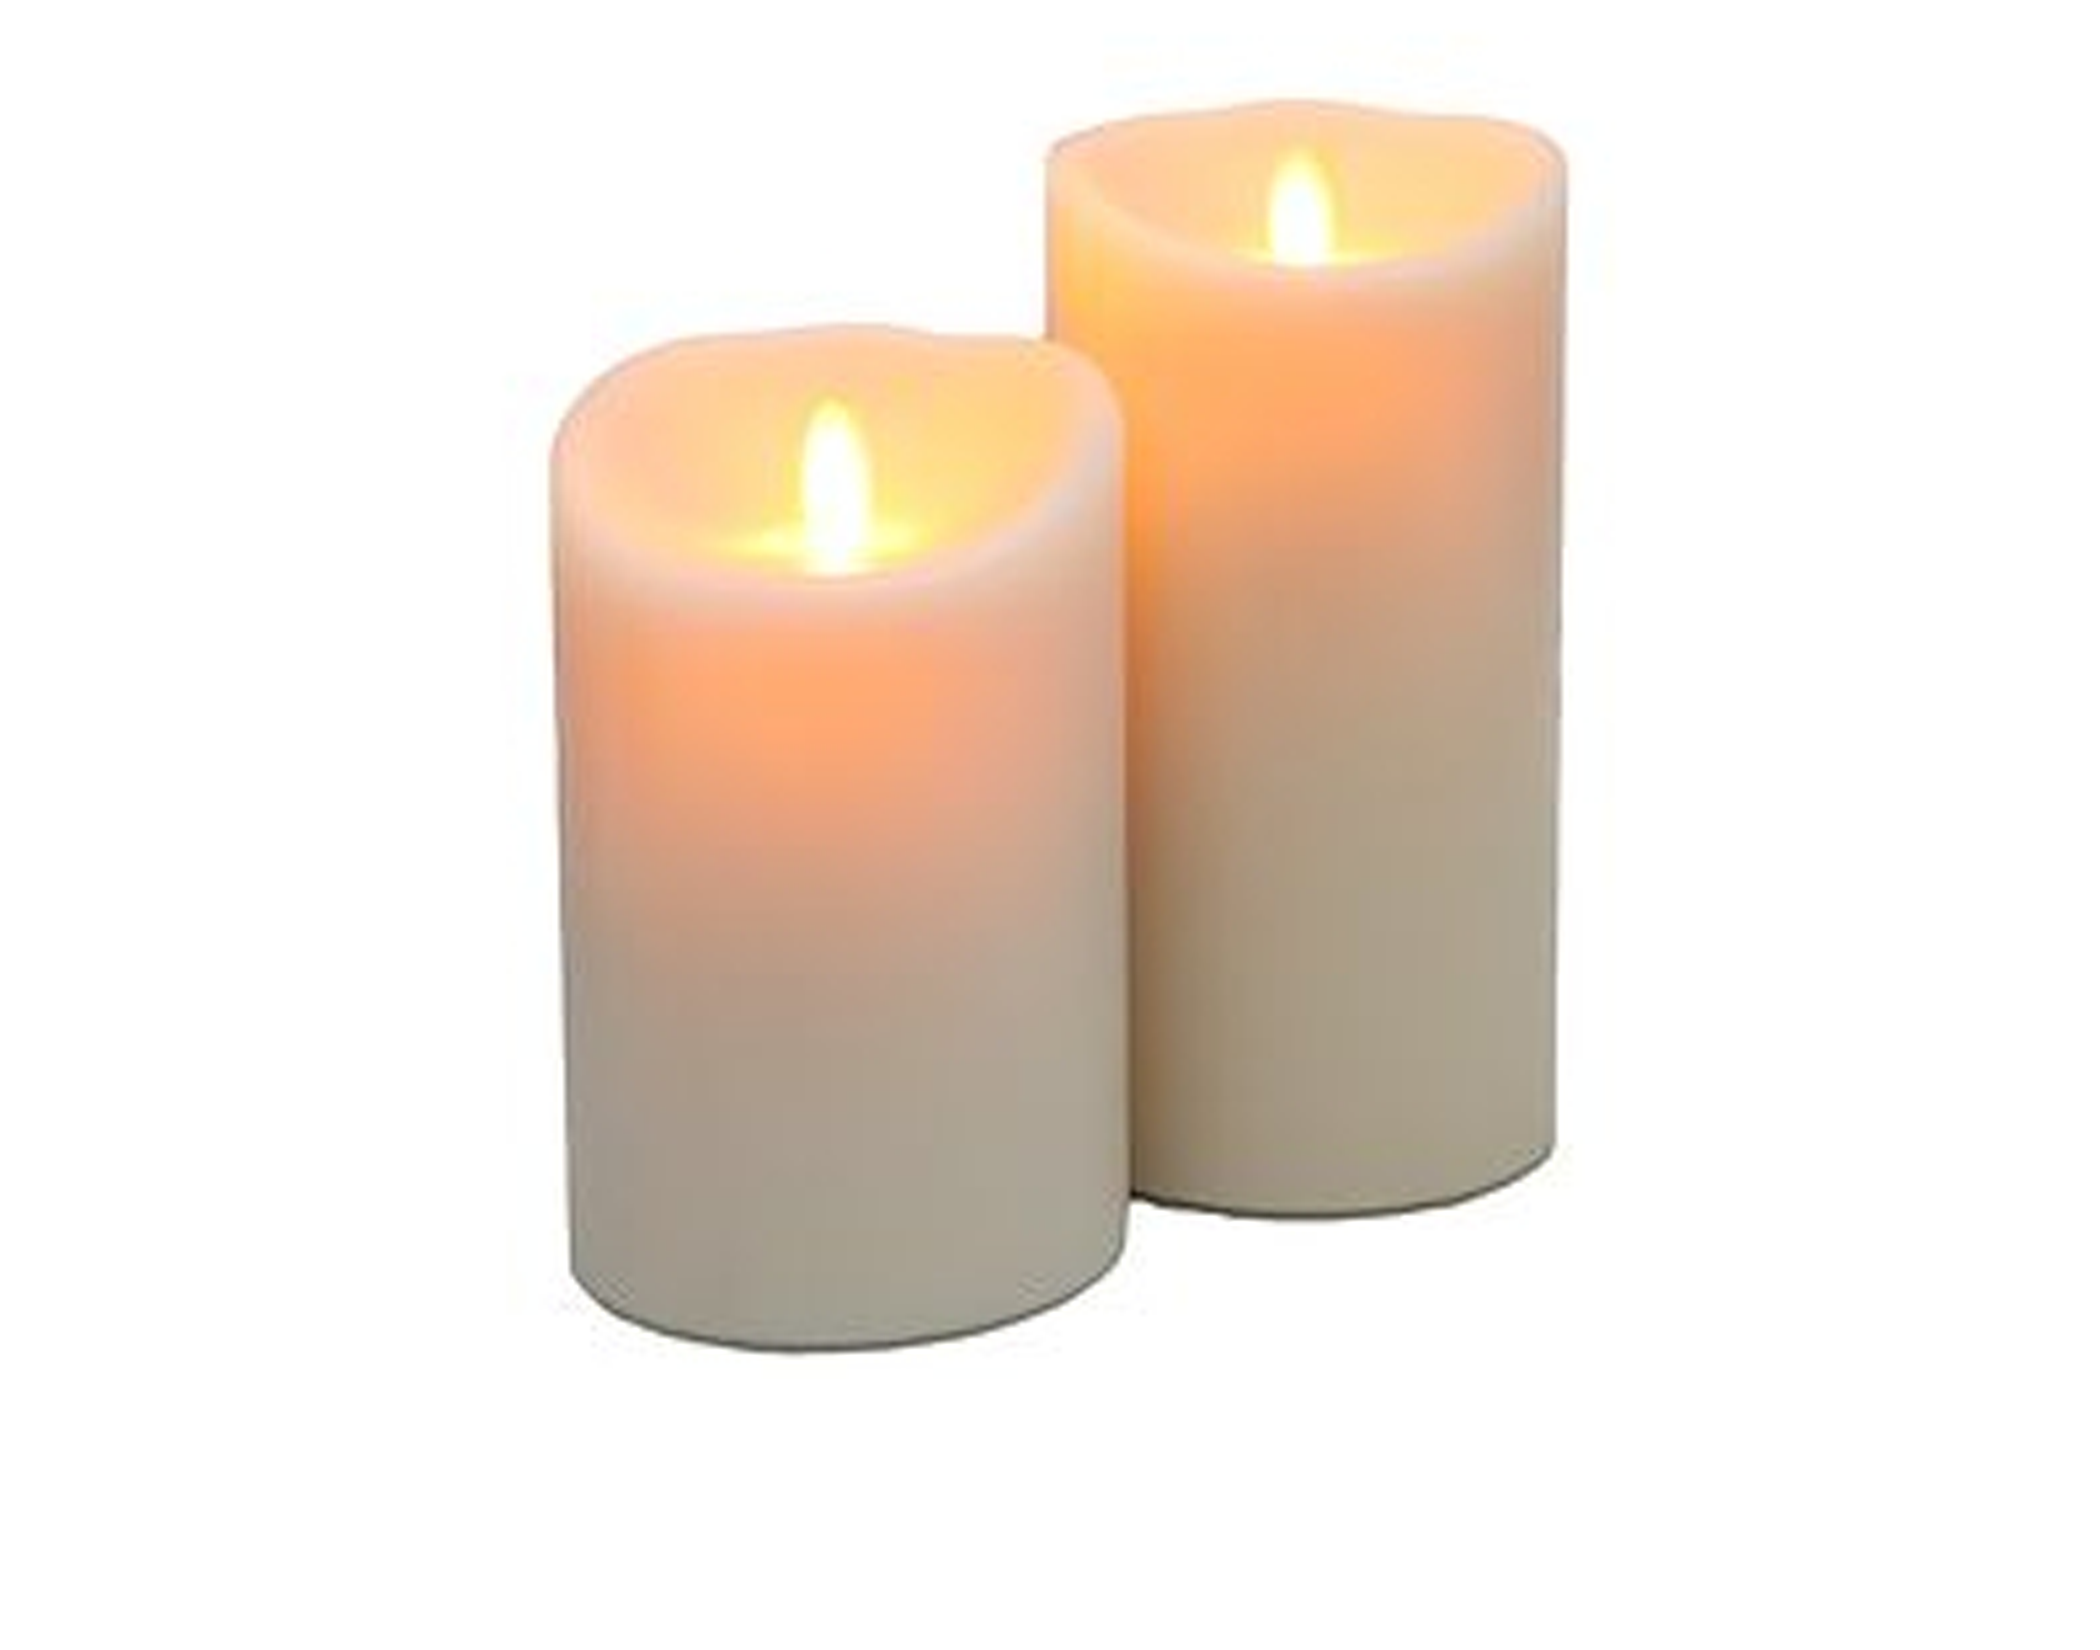 Candles Free Png Image PNG Image - PNG Candles Free